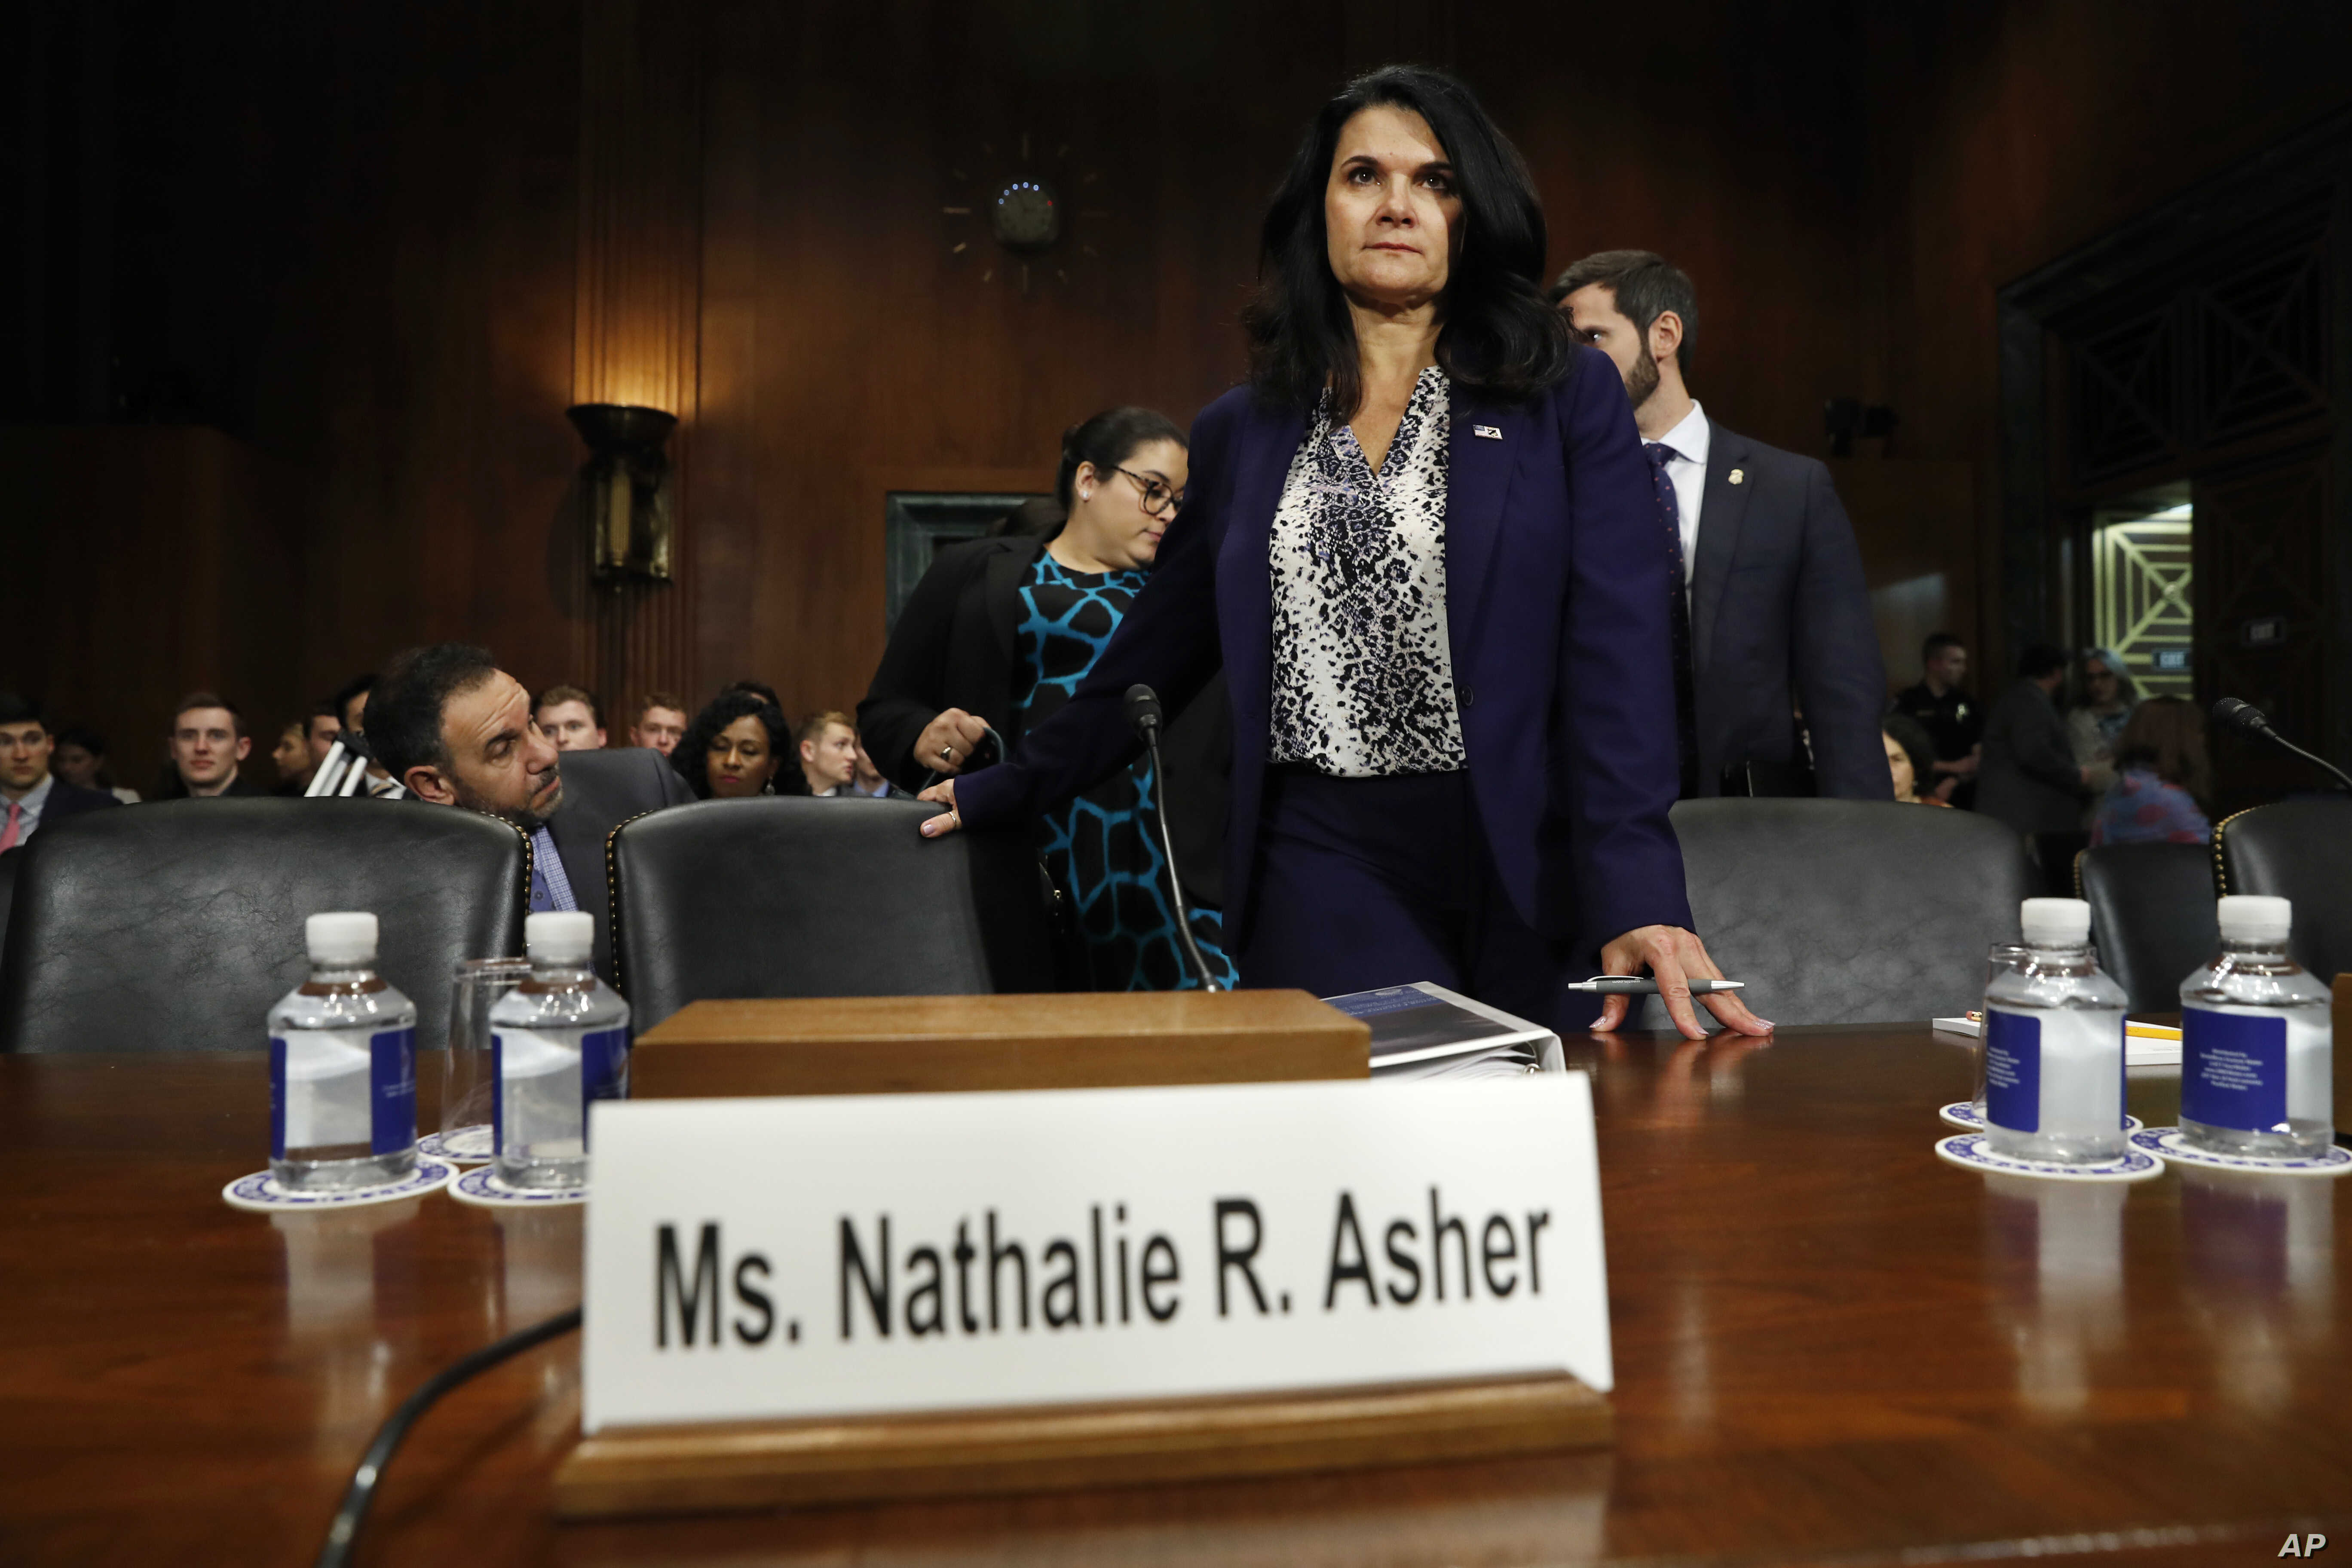 Department of Homeland Security Acting Executive Associate Director of Enforcement and Removal Operations Nathalie Asher arrives to testify during a Senate Judiciary Border Security and Immigration Subcommittee hearing about the border, May 8, 2019.